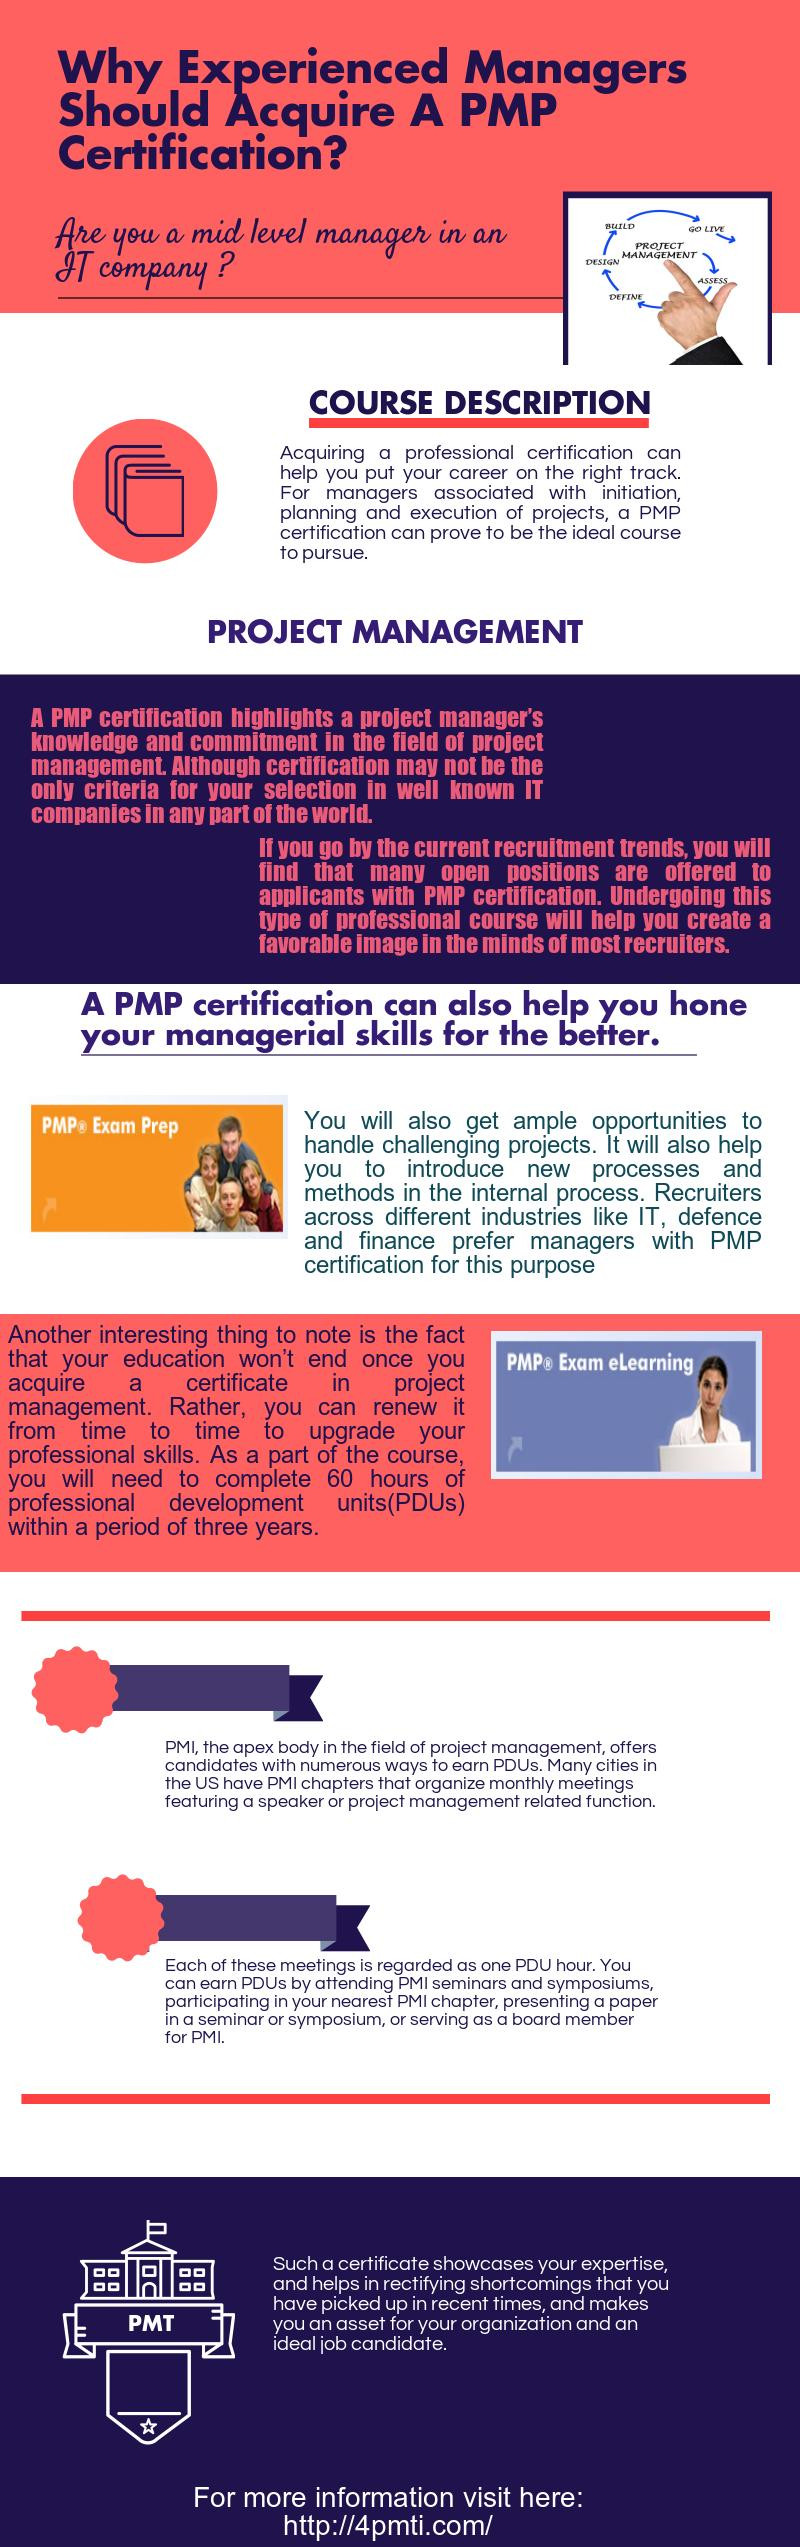 Acquiring A Professional Certification Can Help You Put Your Career